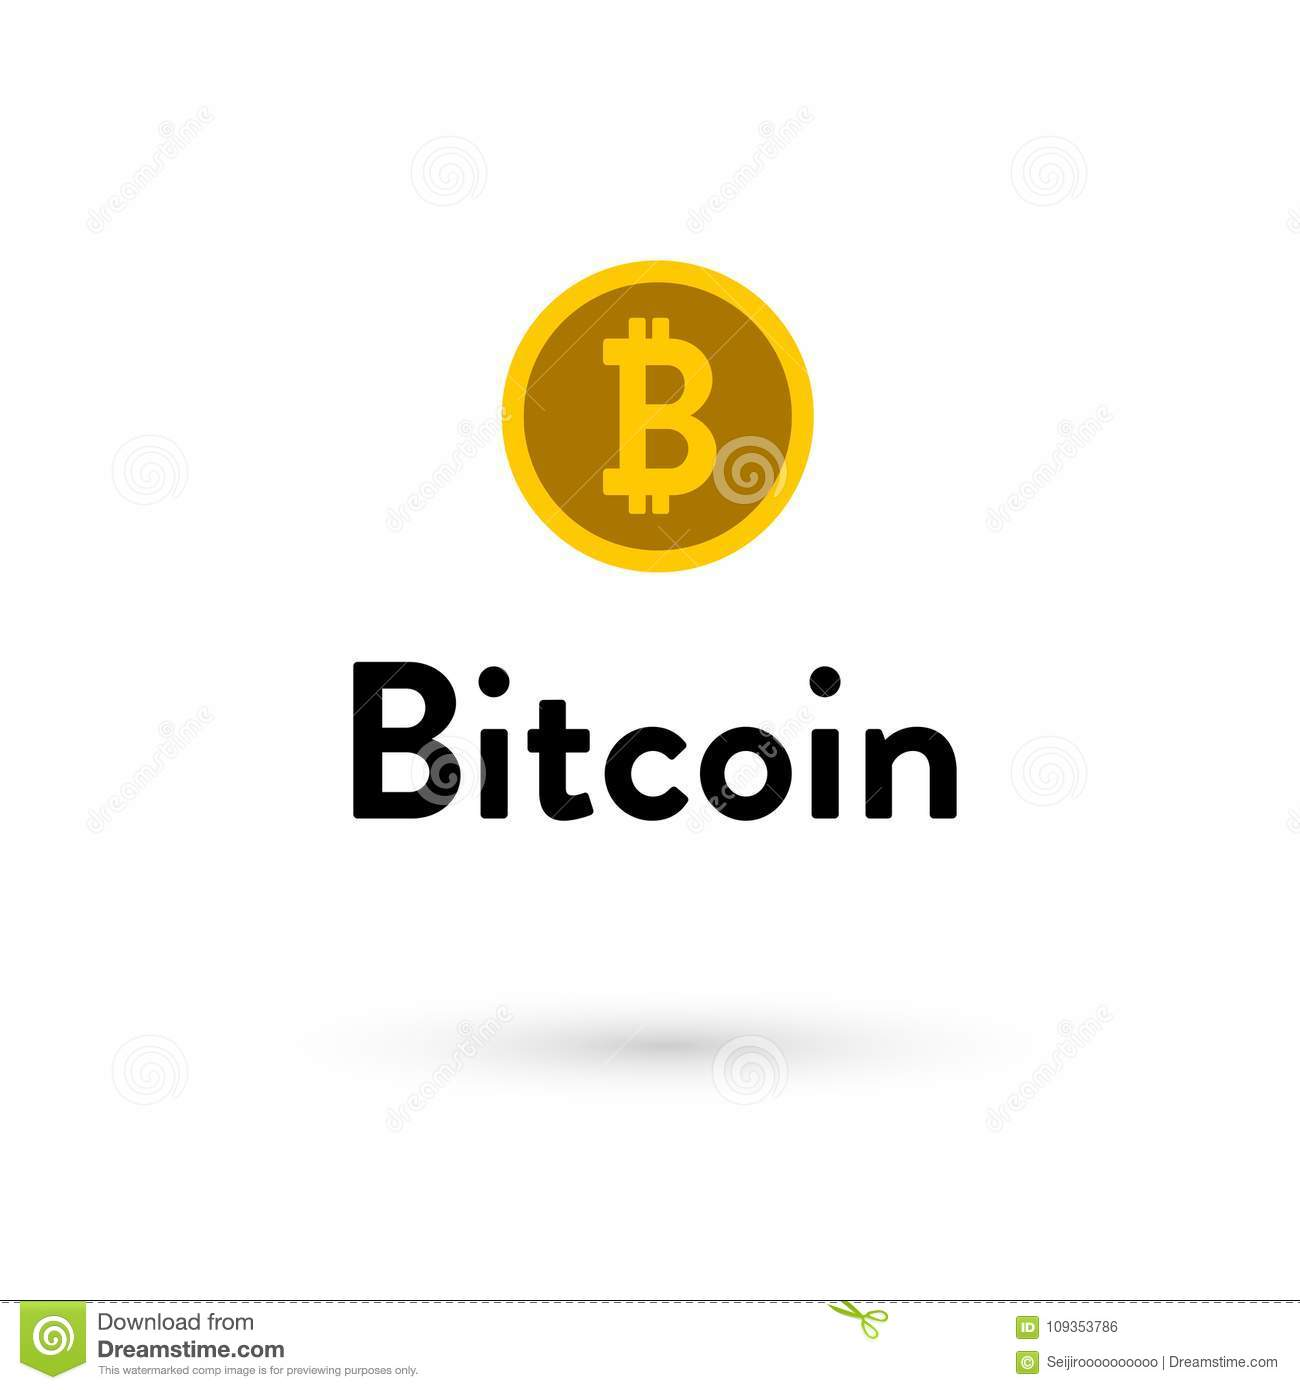 Bitcoins logo design singapore pool live betting strategies